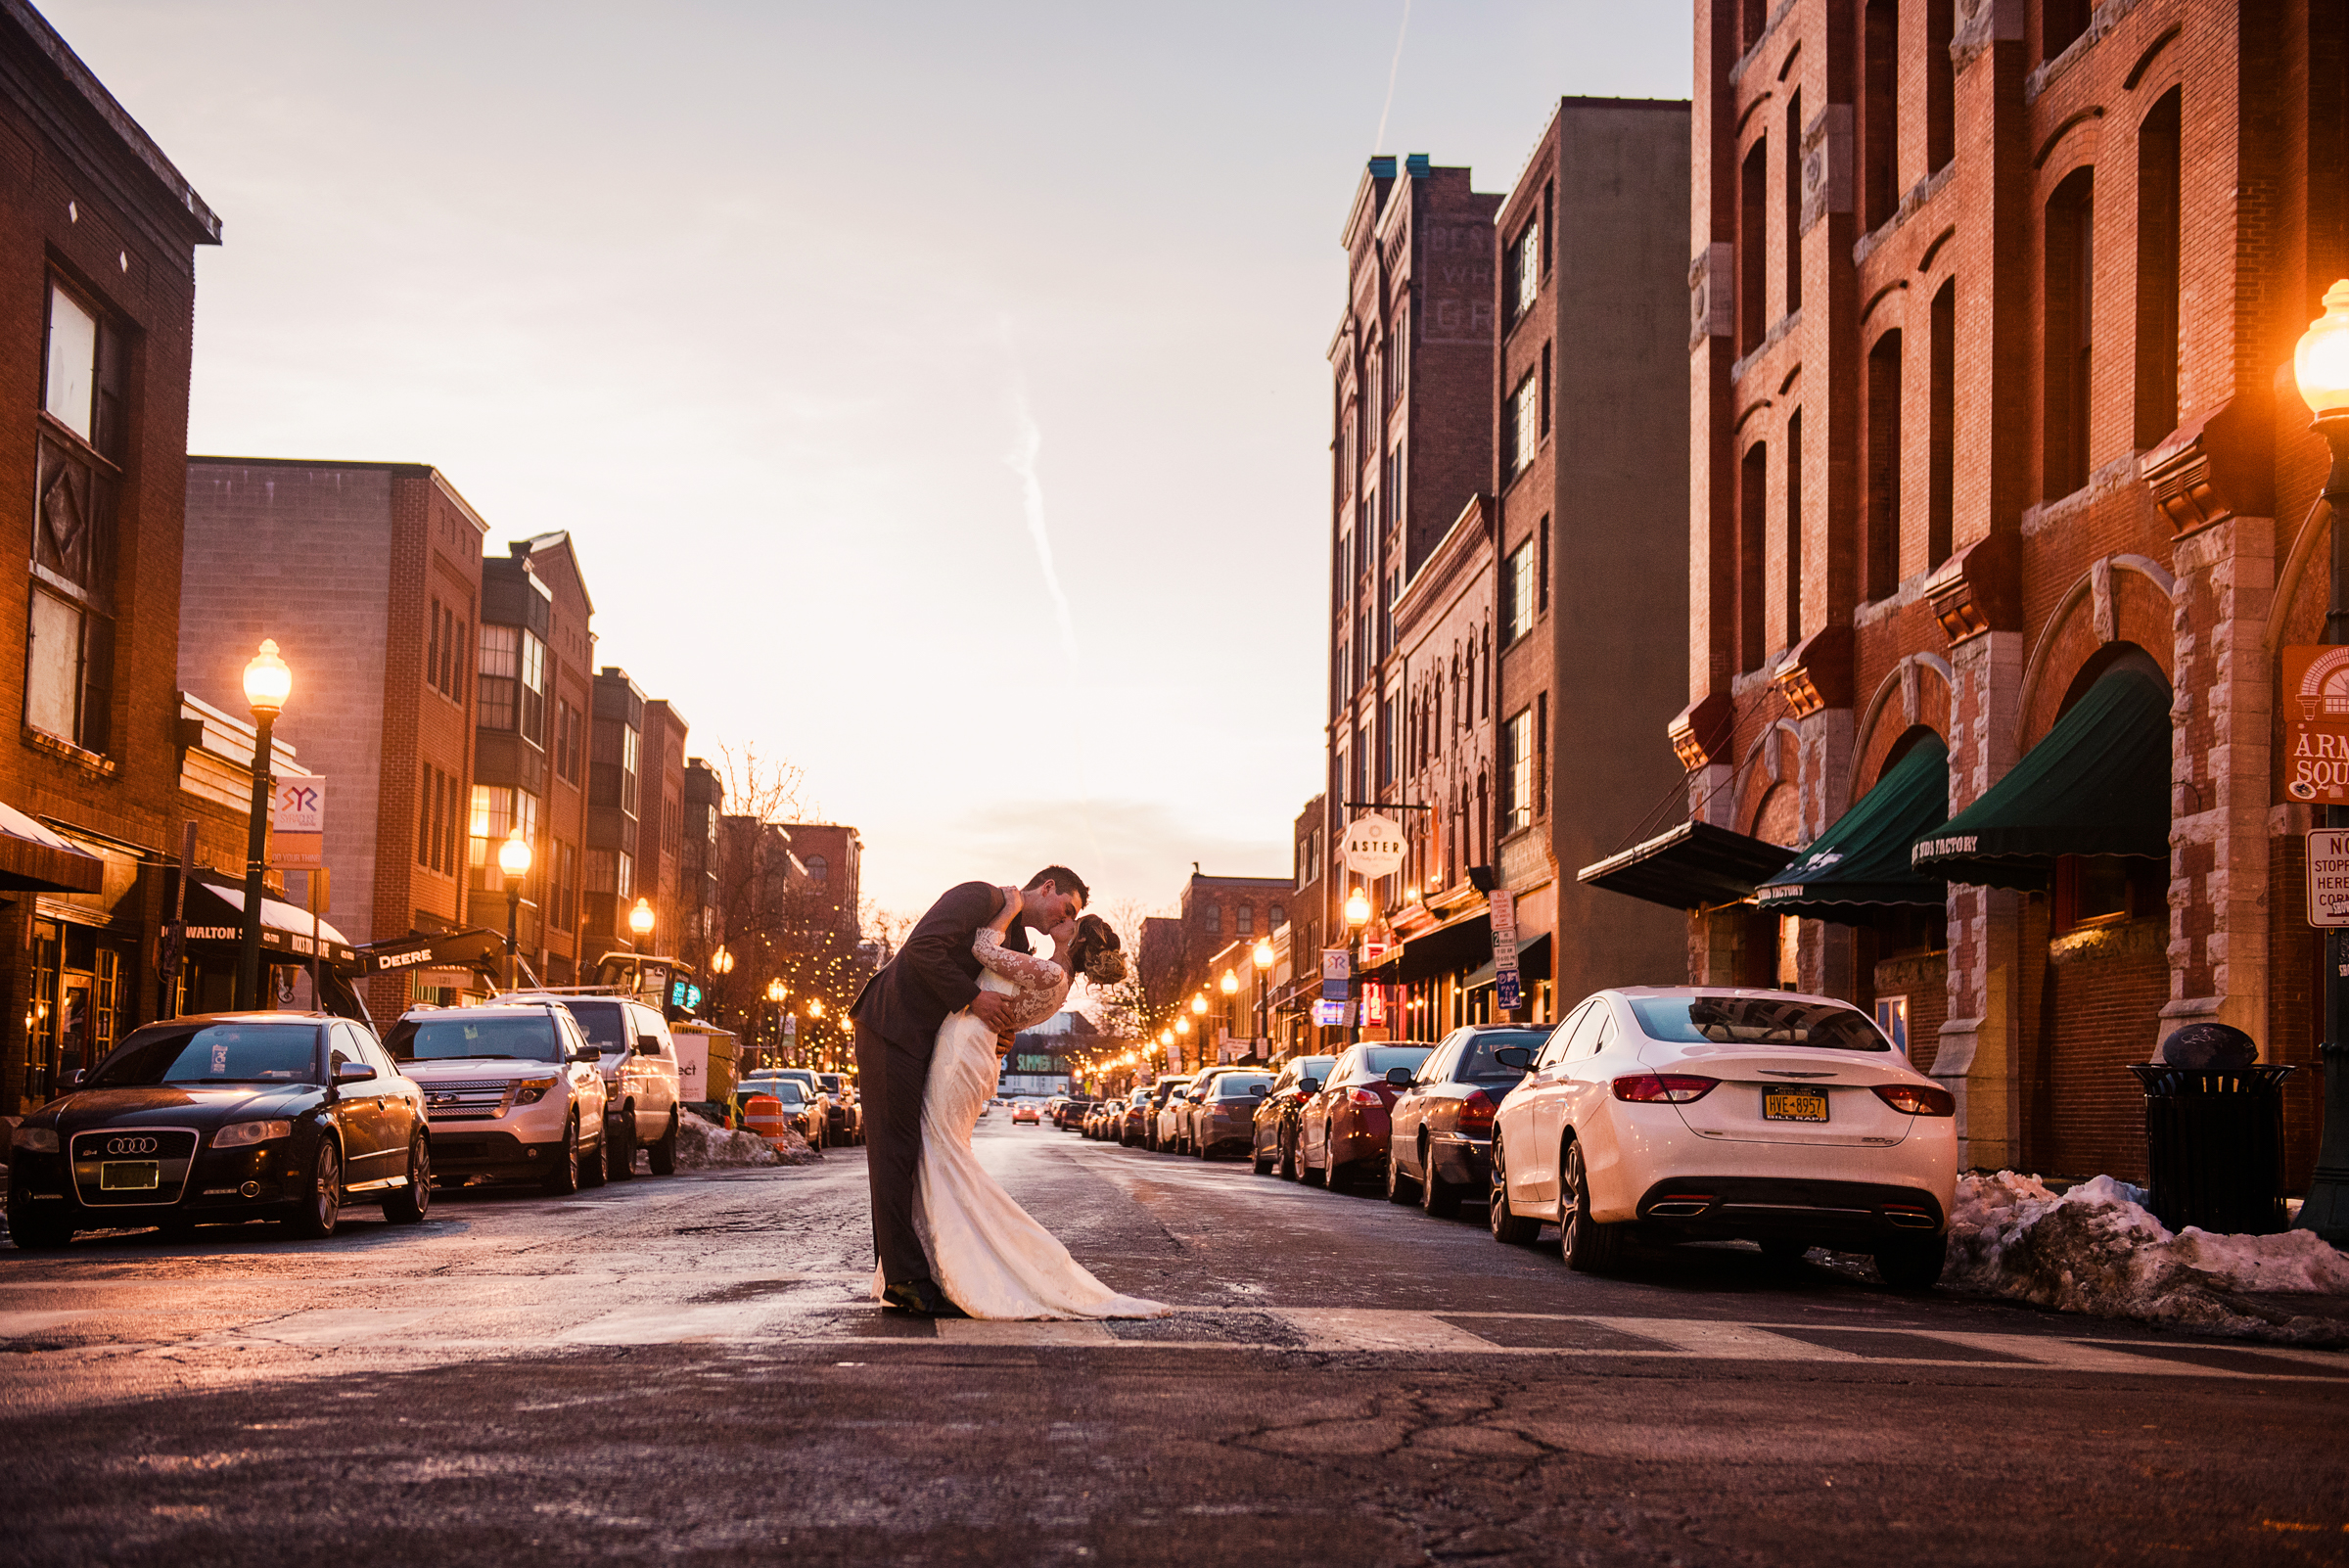 JILL_STUDIO_Wedding_JILL_STUDIO_Rochester_NY_Photographer_1-DSC_5949.jpg